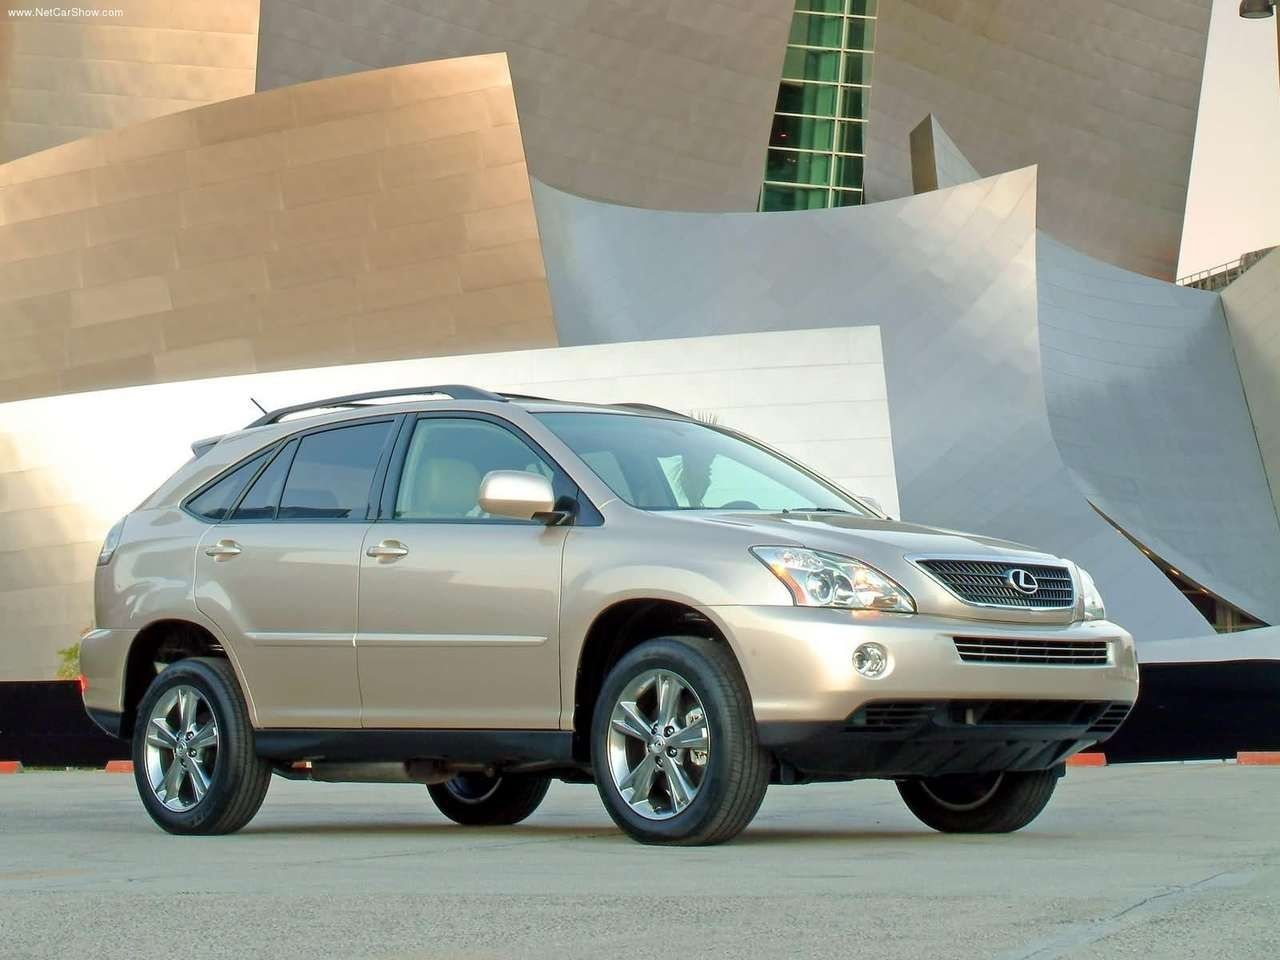 hight resolution of enjoy free pdf download of electrical wiring diagram for lexus rx400h model 2005 ewd609e